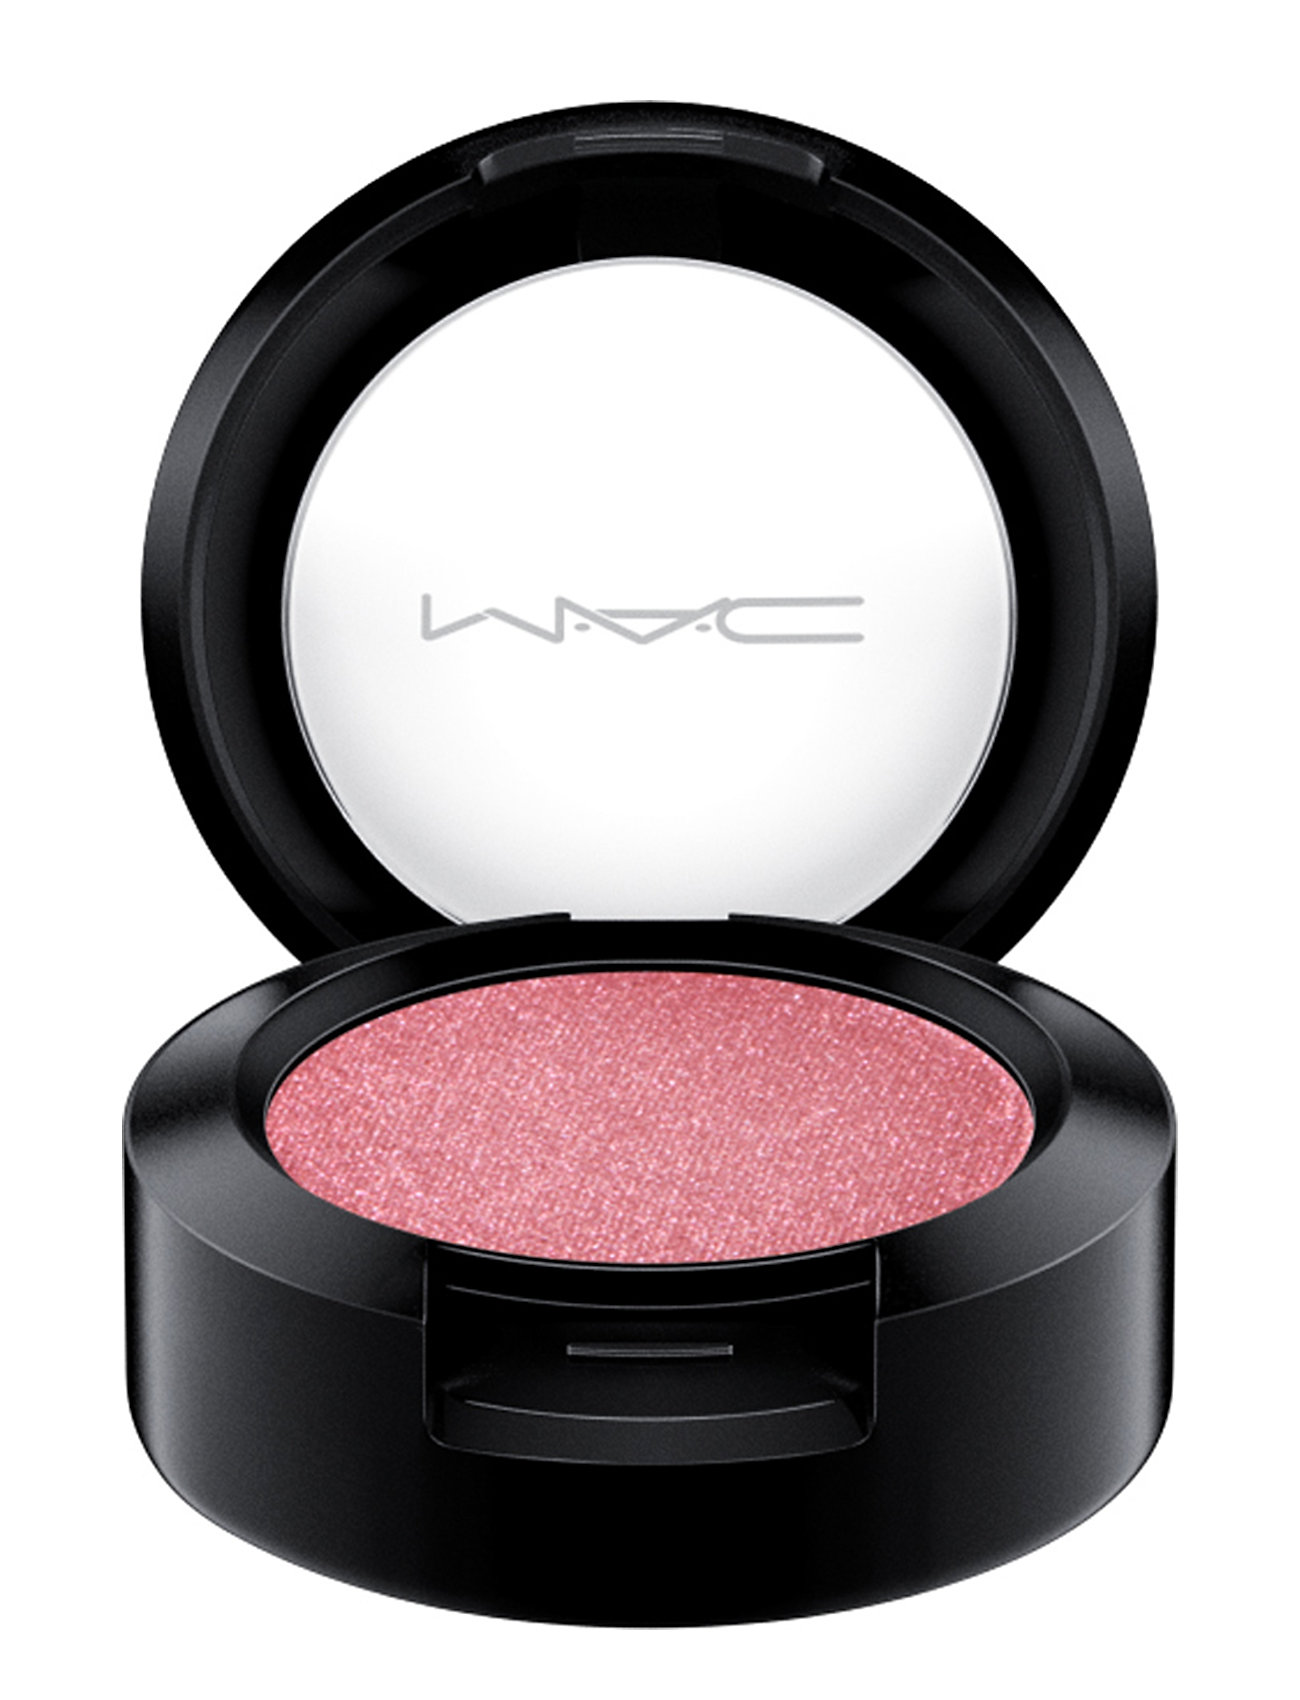 Image of Small Eye Shadow Beauty WOMEN Makeup Eyes Eyeshadow - Not Palettes Blå M.A.C. (3260672995)